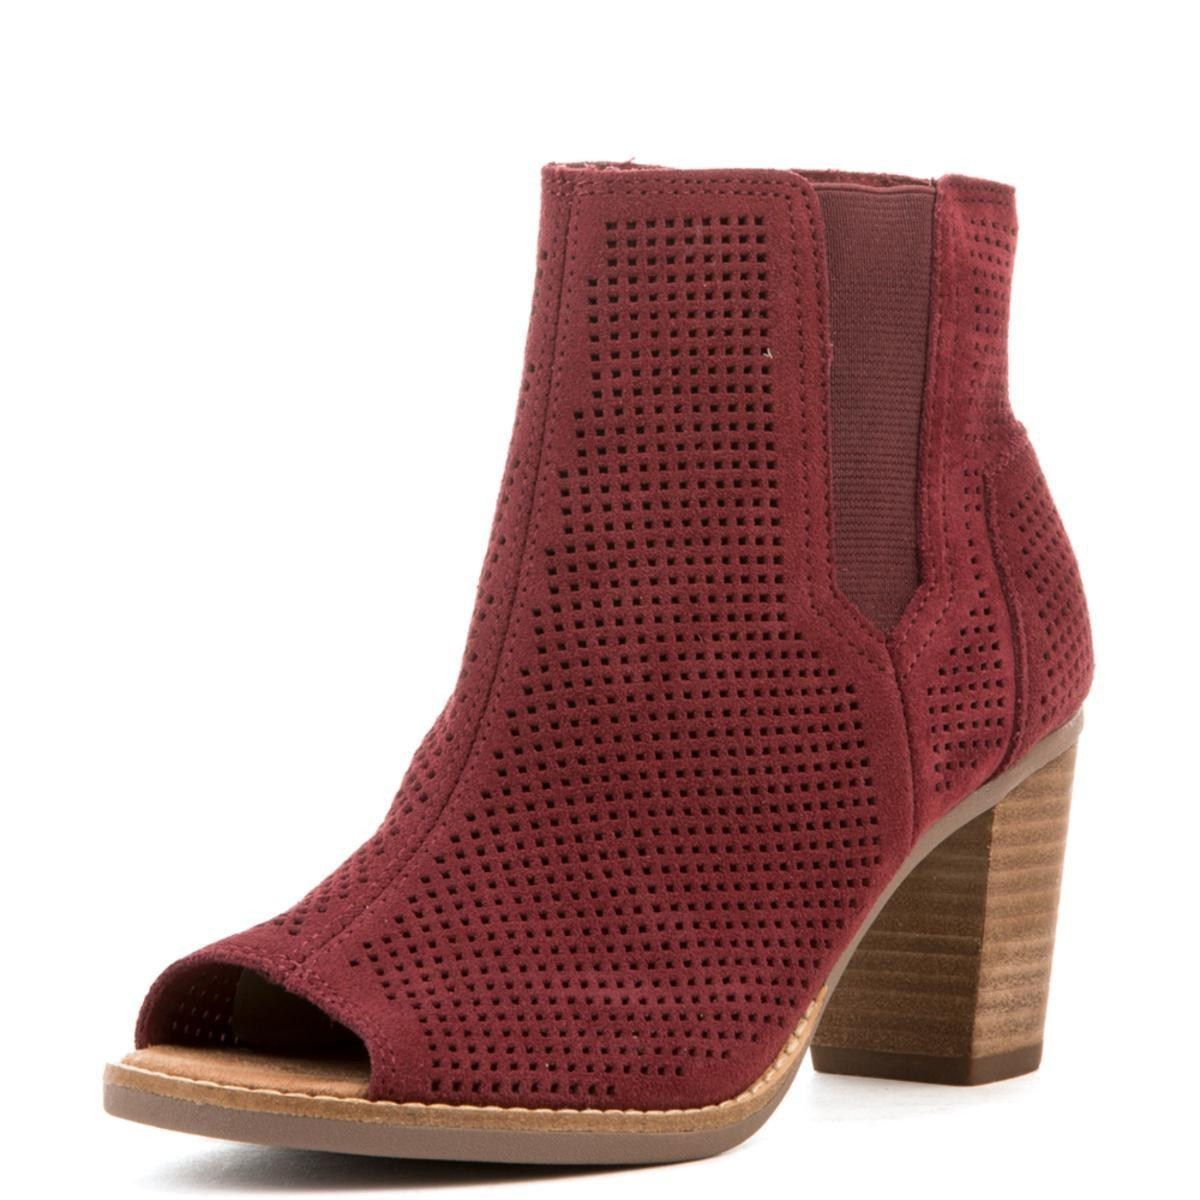 TOMS Majorca Oxblood Perforated Suede